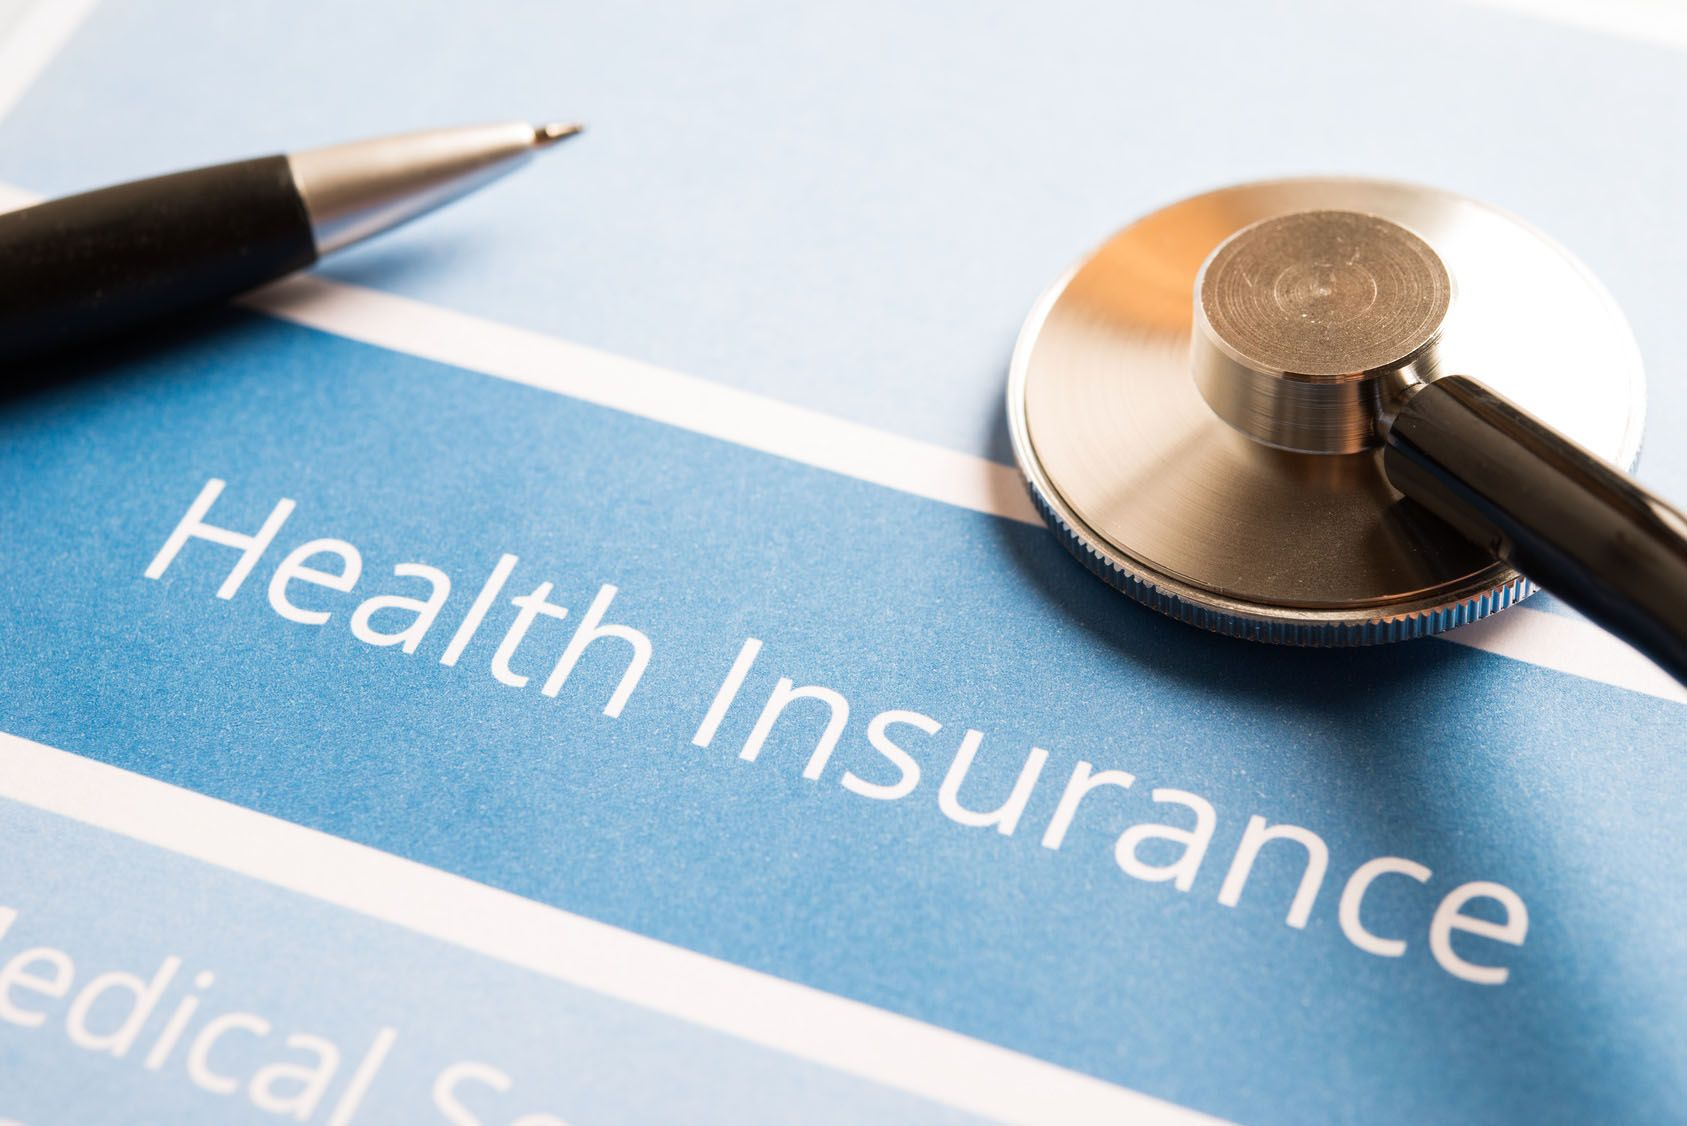 Health Insurance Policies By Trusted Business Reviews On Trusted